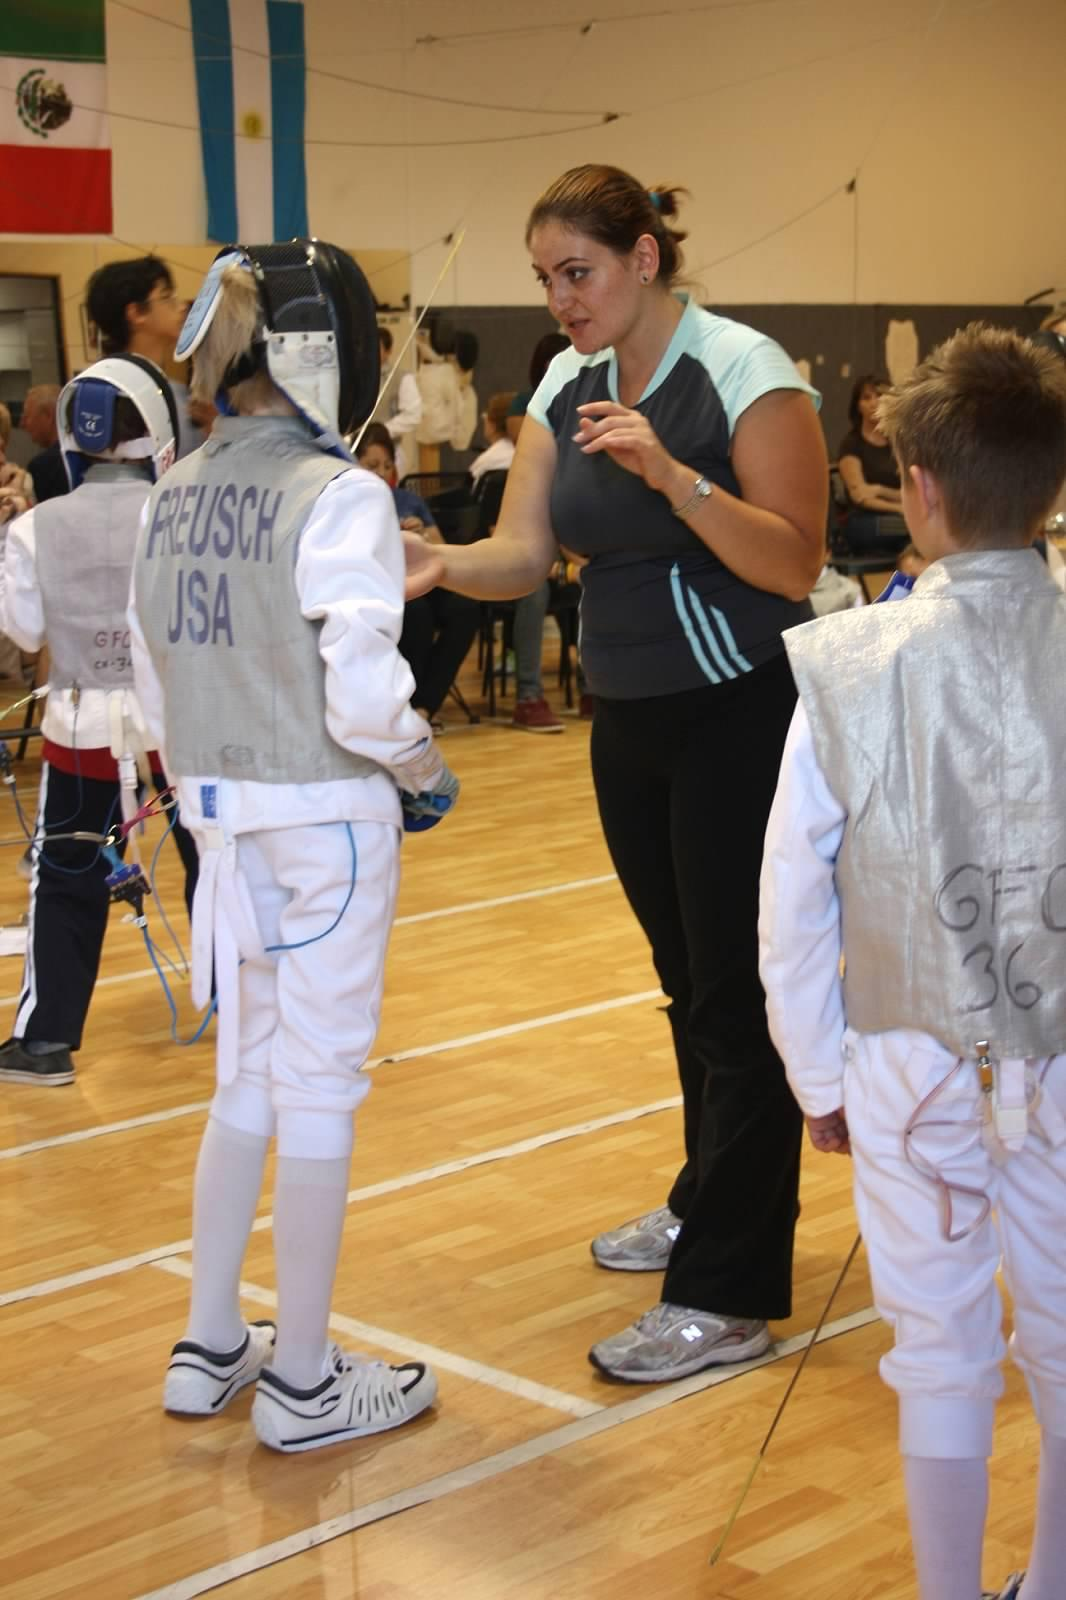 Gryphon Fencing Club Coupons Near Me In Placentia 8coupons